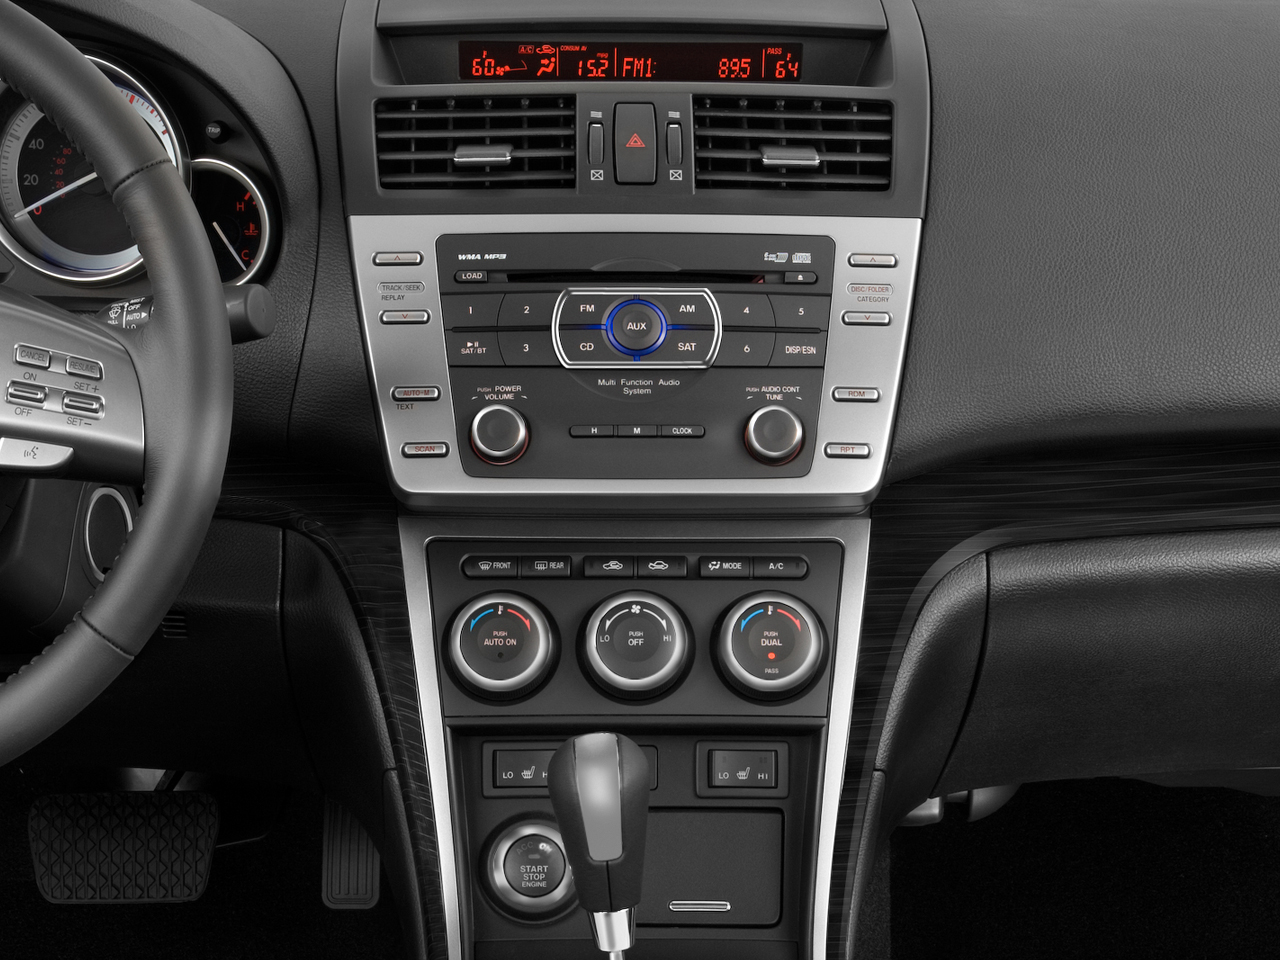 2009 mazda 6 latest news features and reviews automobile magazine. Black Bedroom Furniture Sets. Home Design Ideas